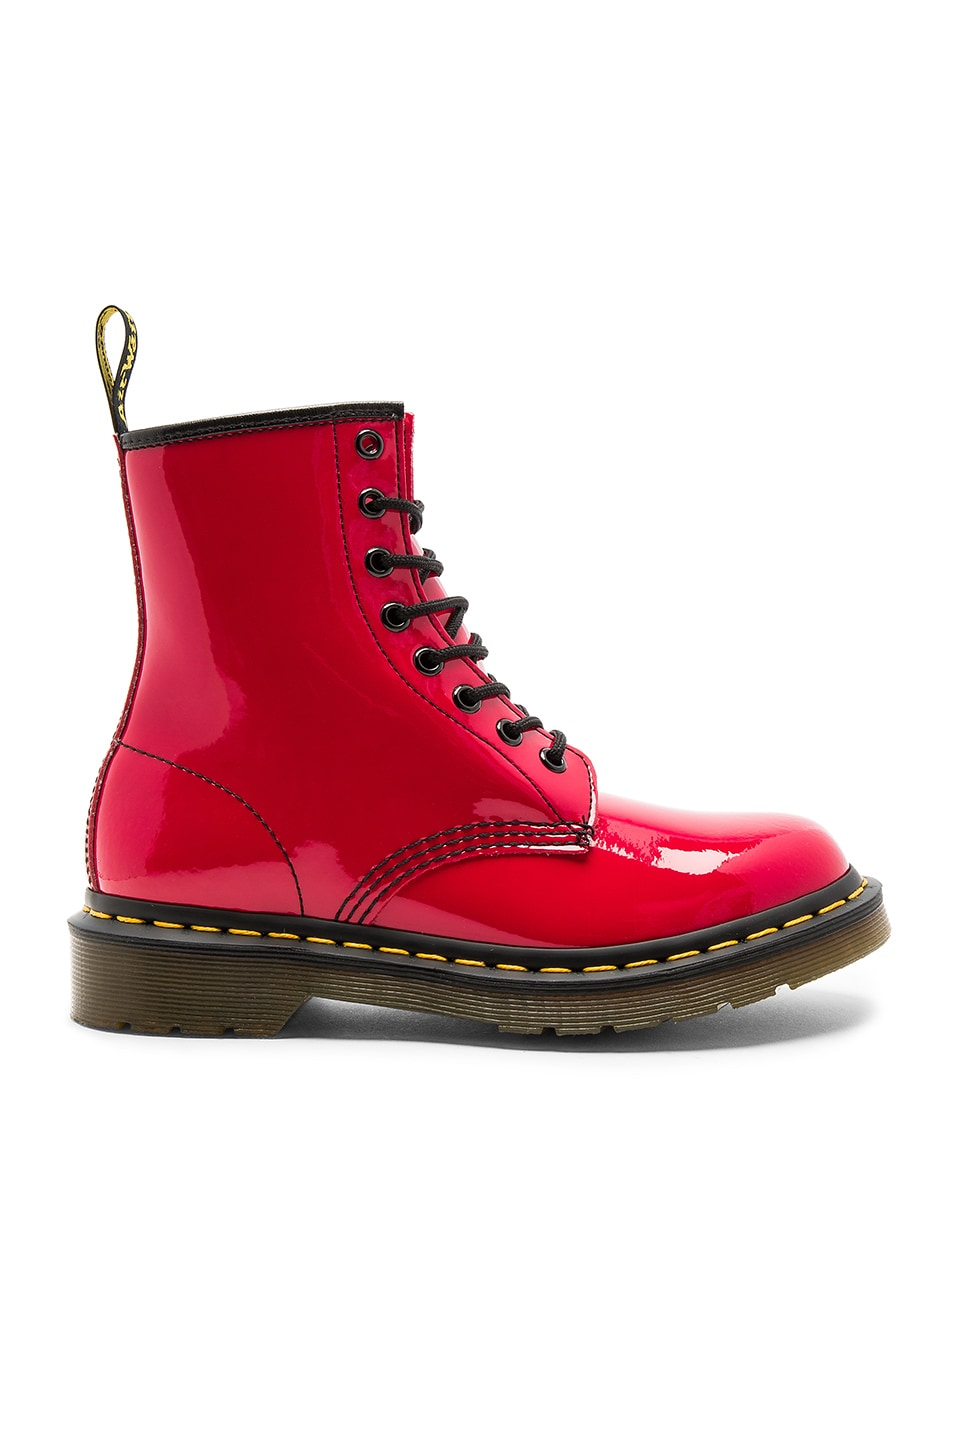 Dr. Martens 1460 3 Eye Boots in Red